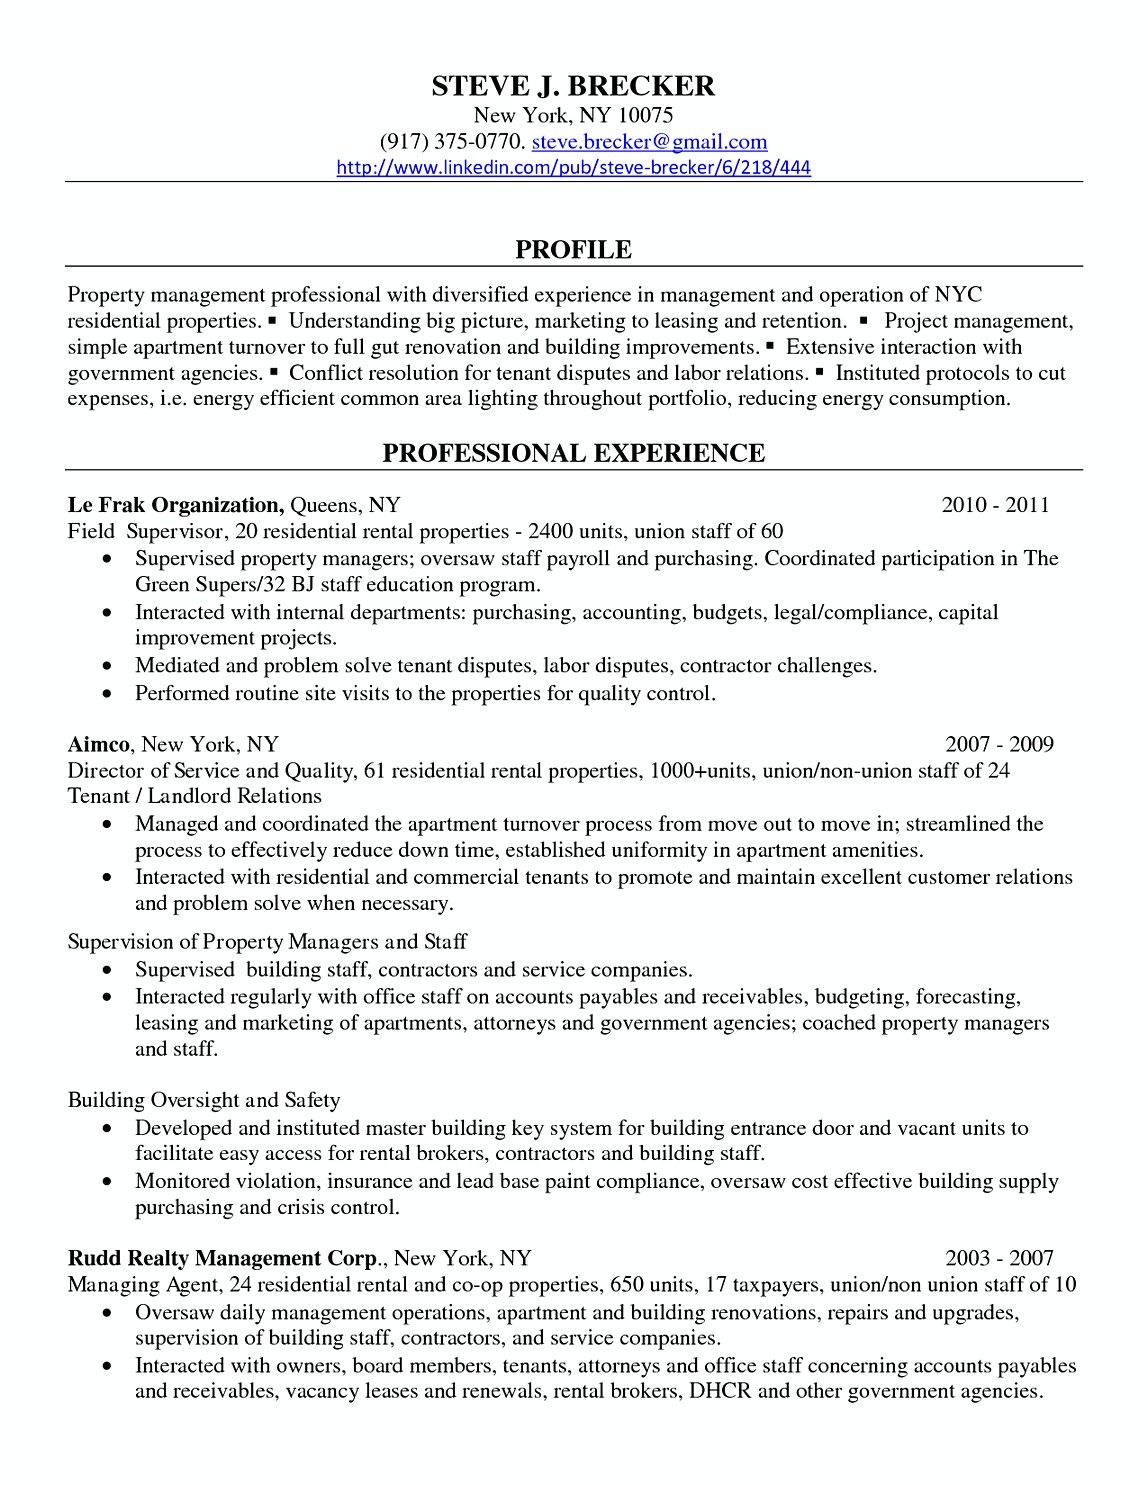 Apartment Manager Resume Classy Property Manager Professional Resume Samples  Commercial Property .